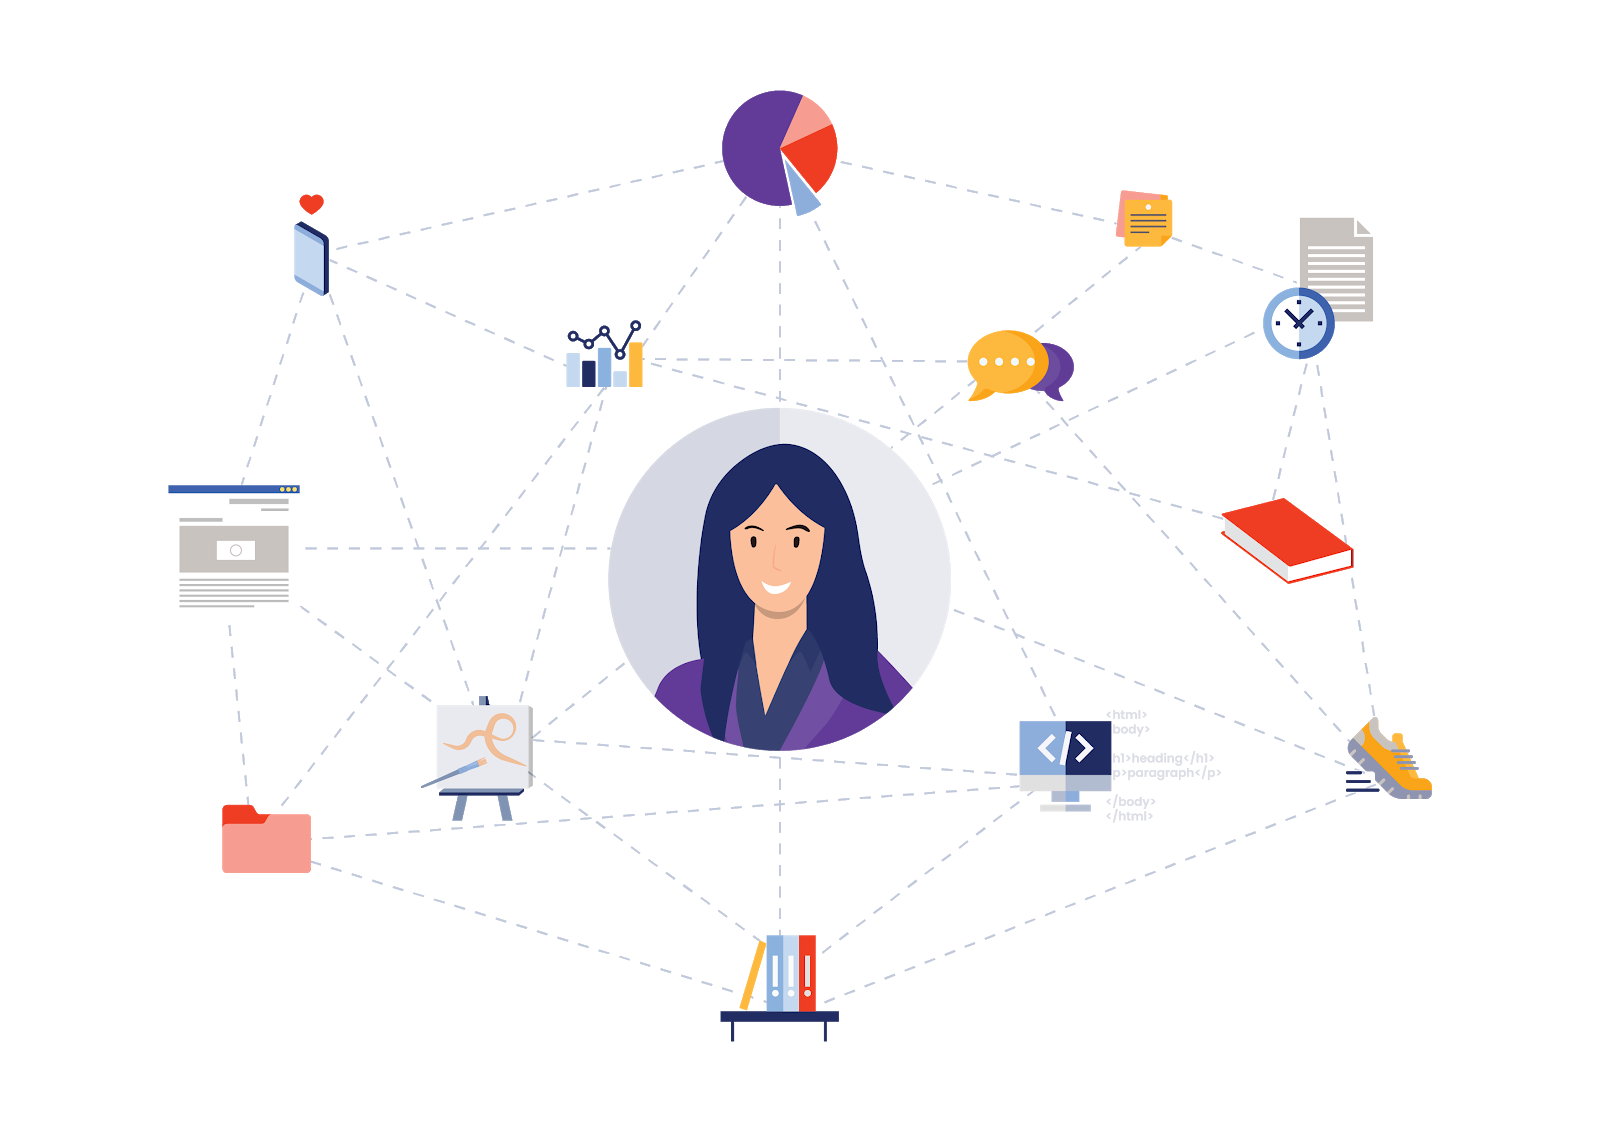 Illustration of woman with all interests and professional commitments organised using MyHaven